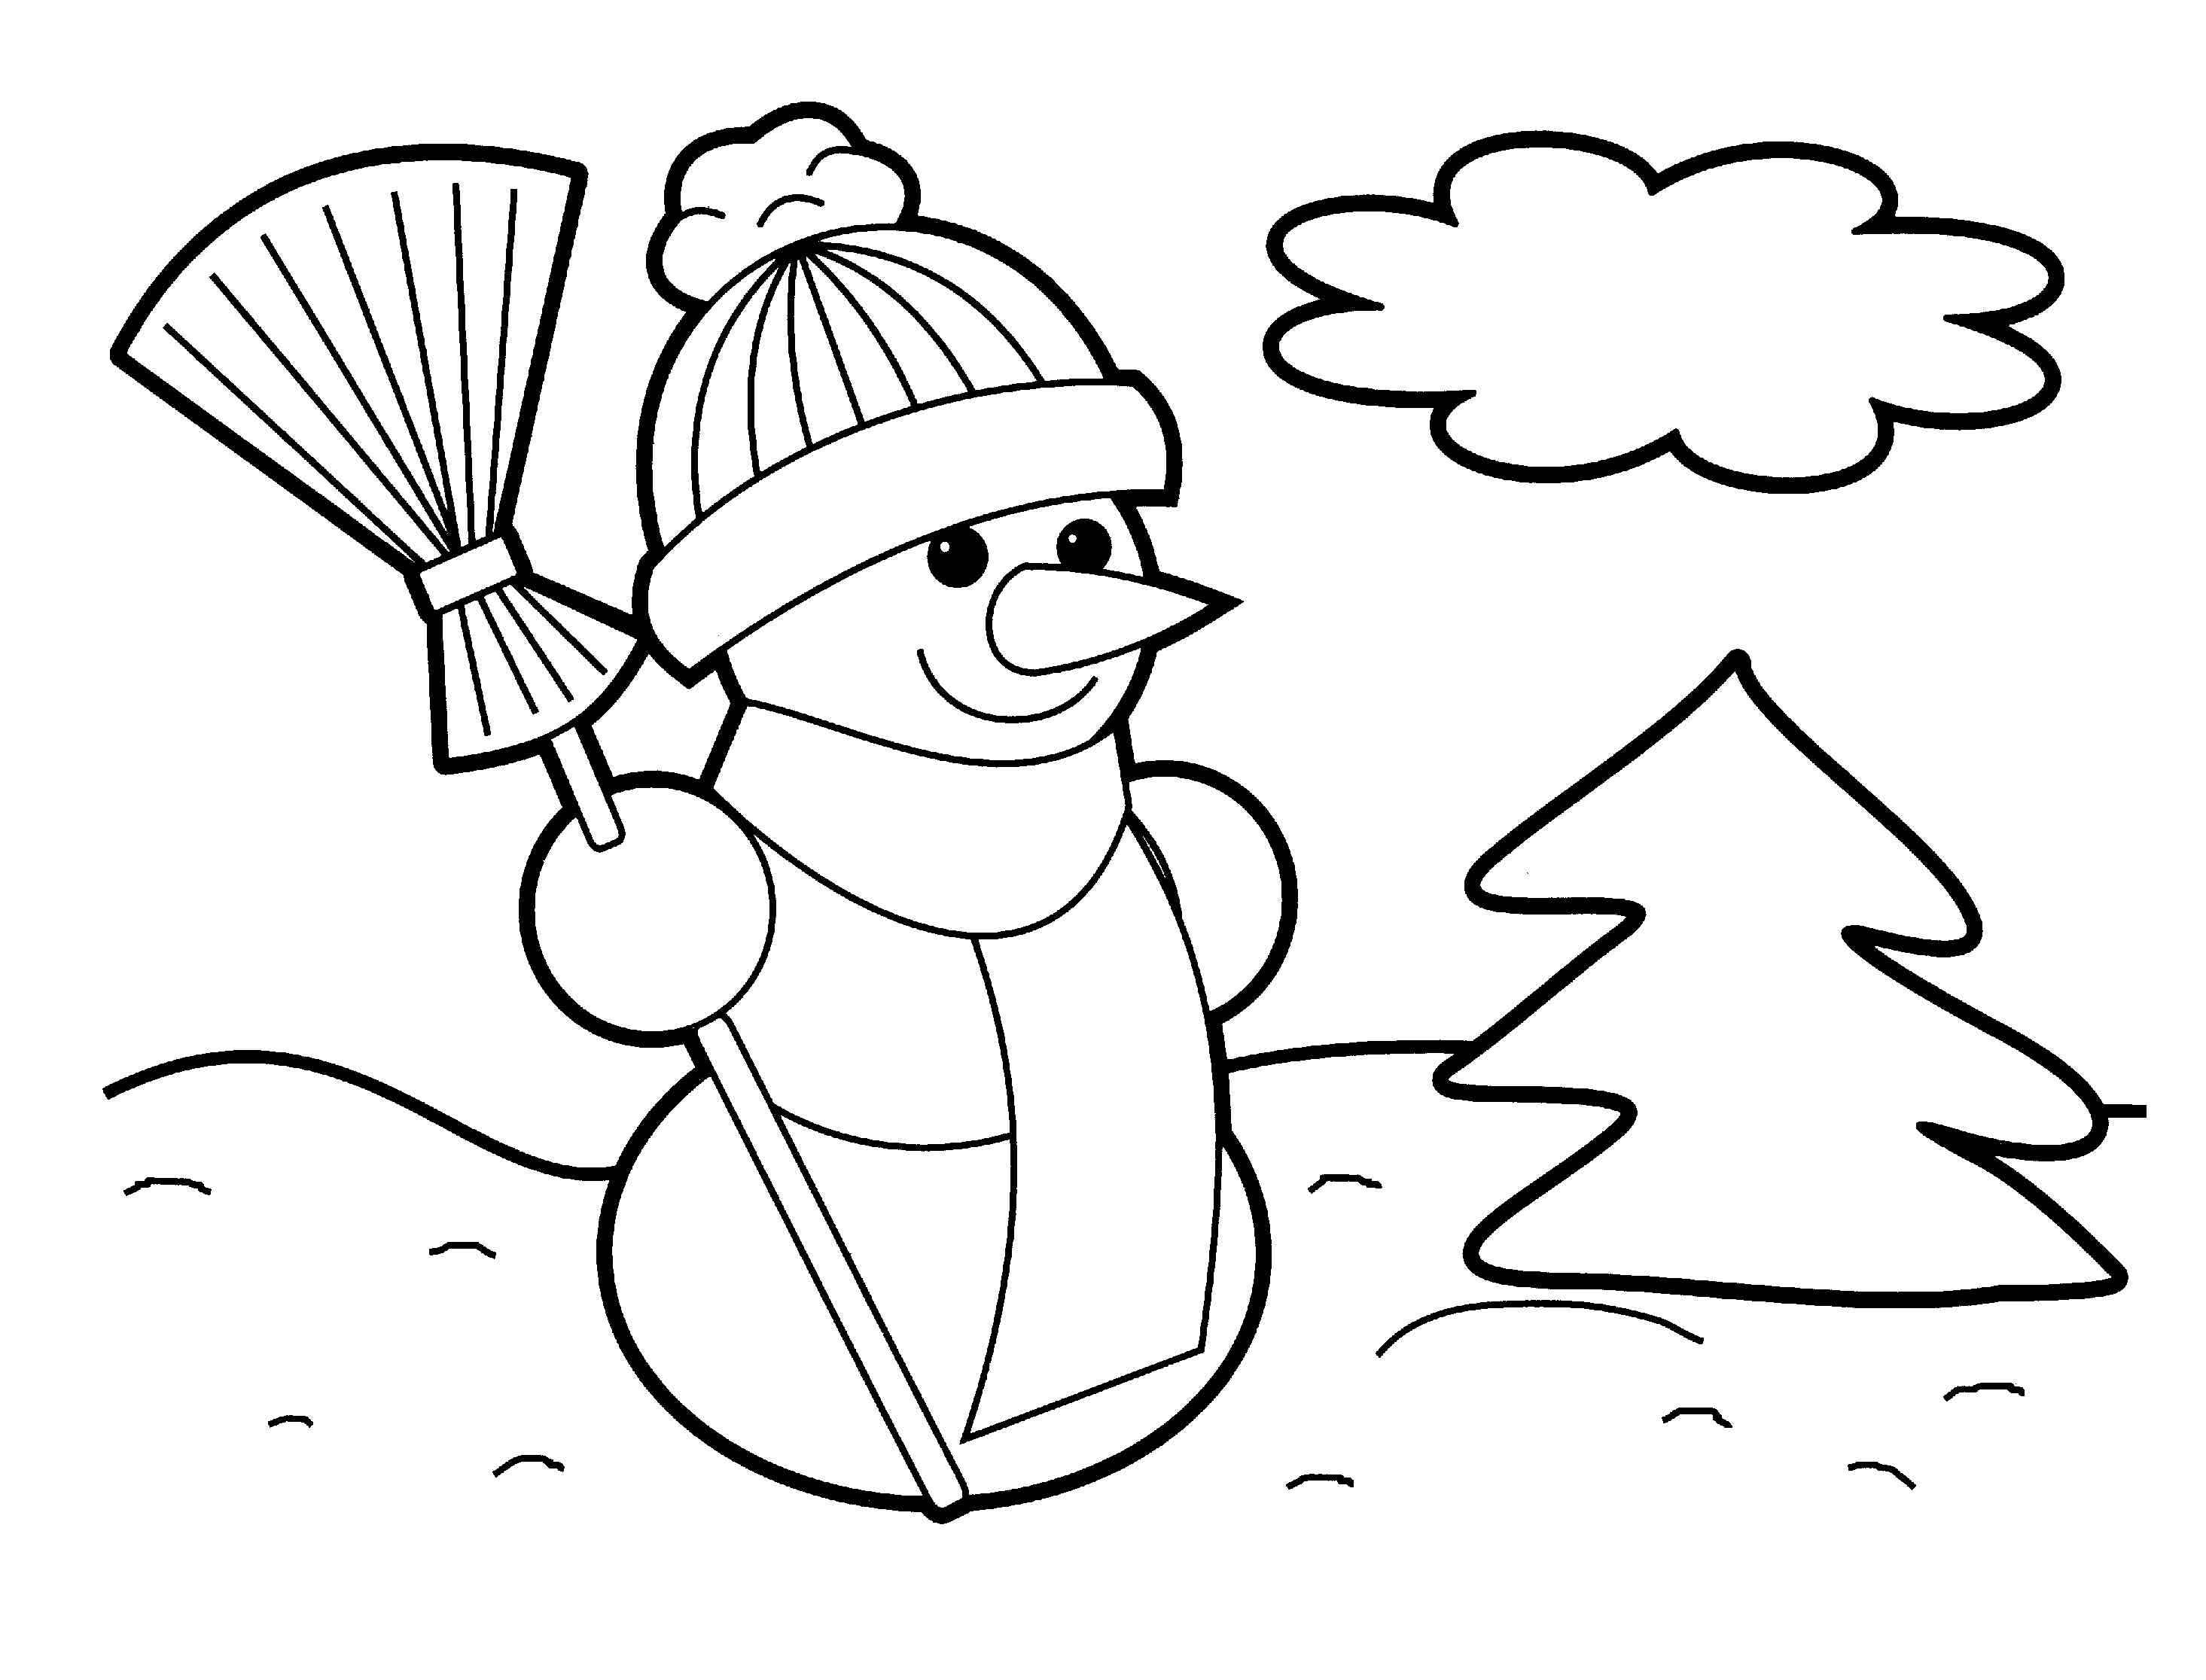 Santa Claus Coloring Pages Free With Awesome Printables Design